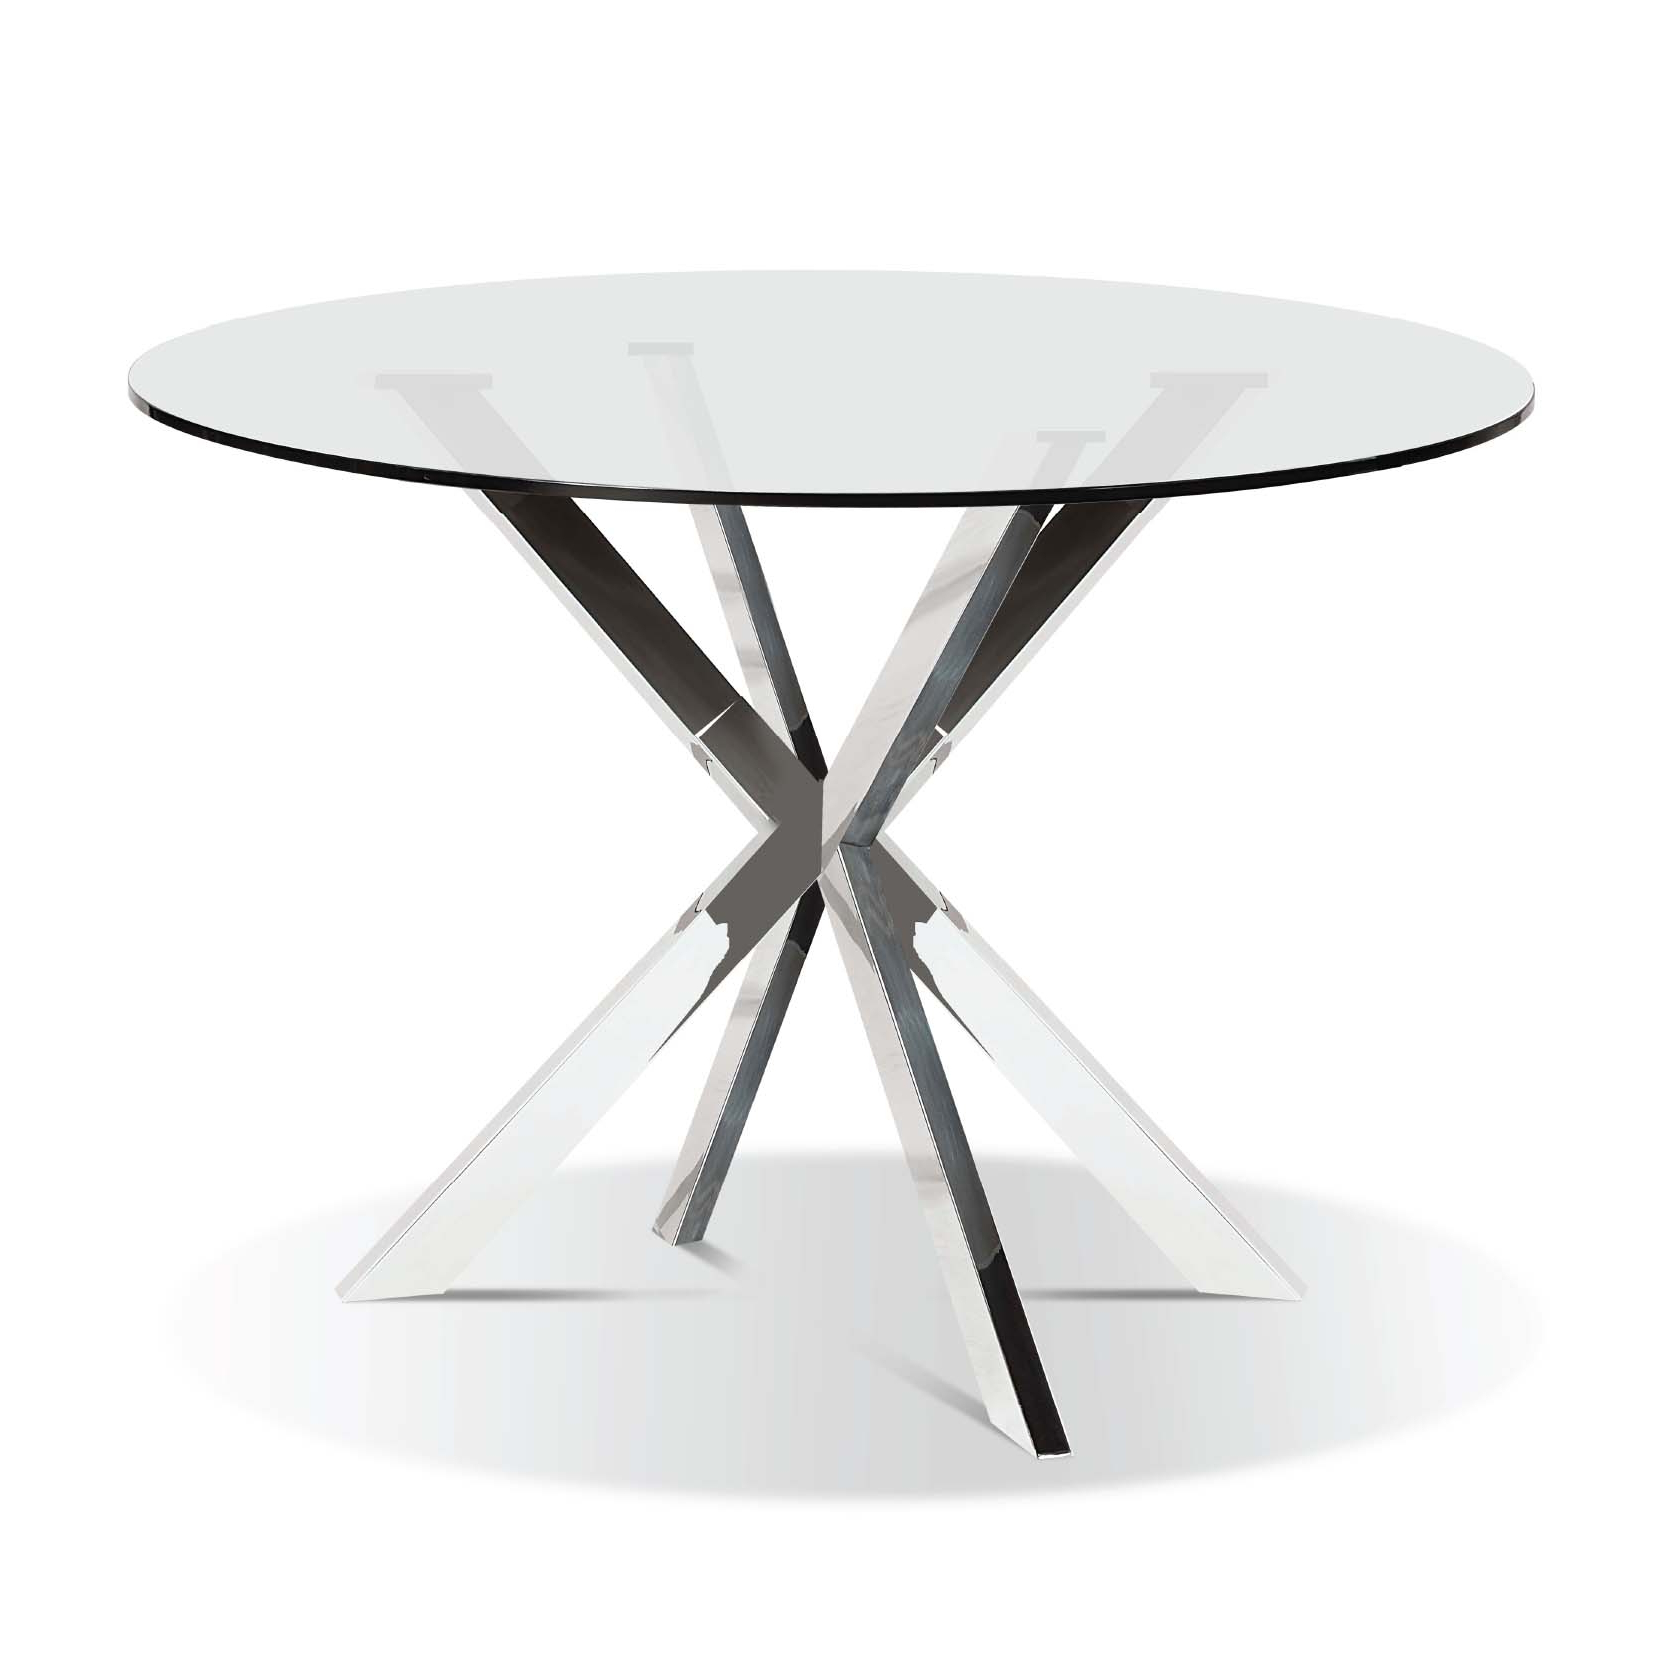 Best And Newest Modern Round Glasstop Dining Table Intended For Glass Top Condo Dining Tables (View 4 of 30)